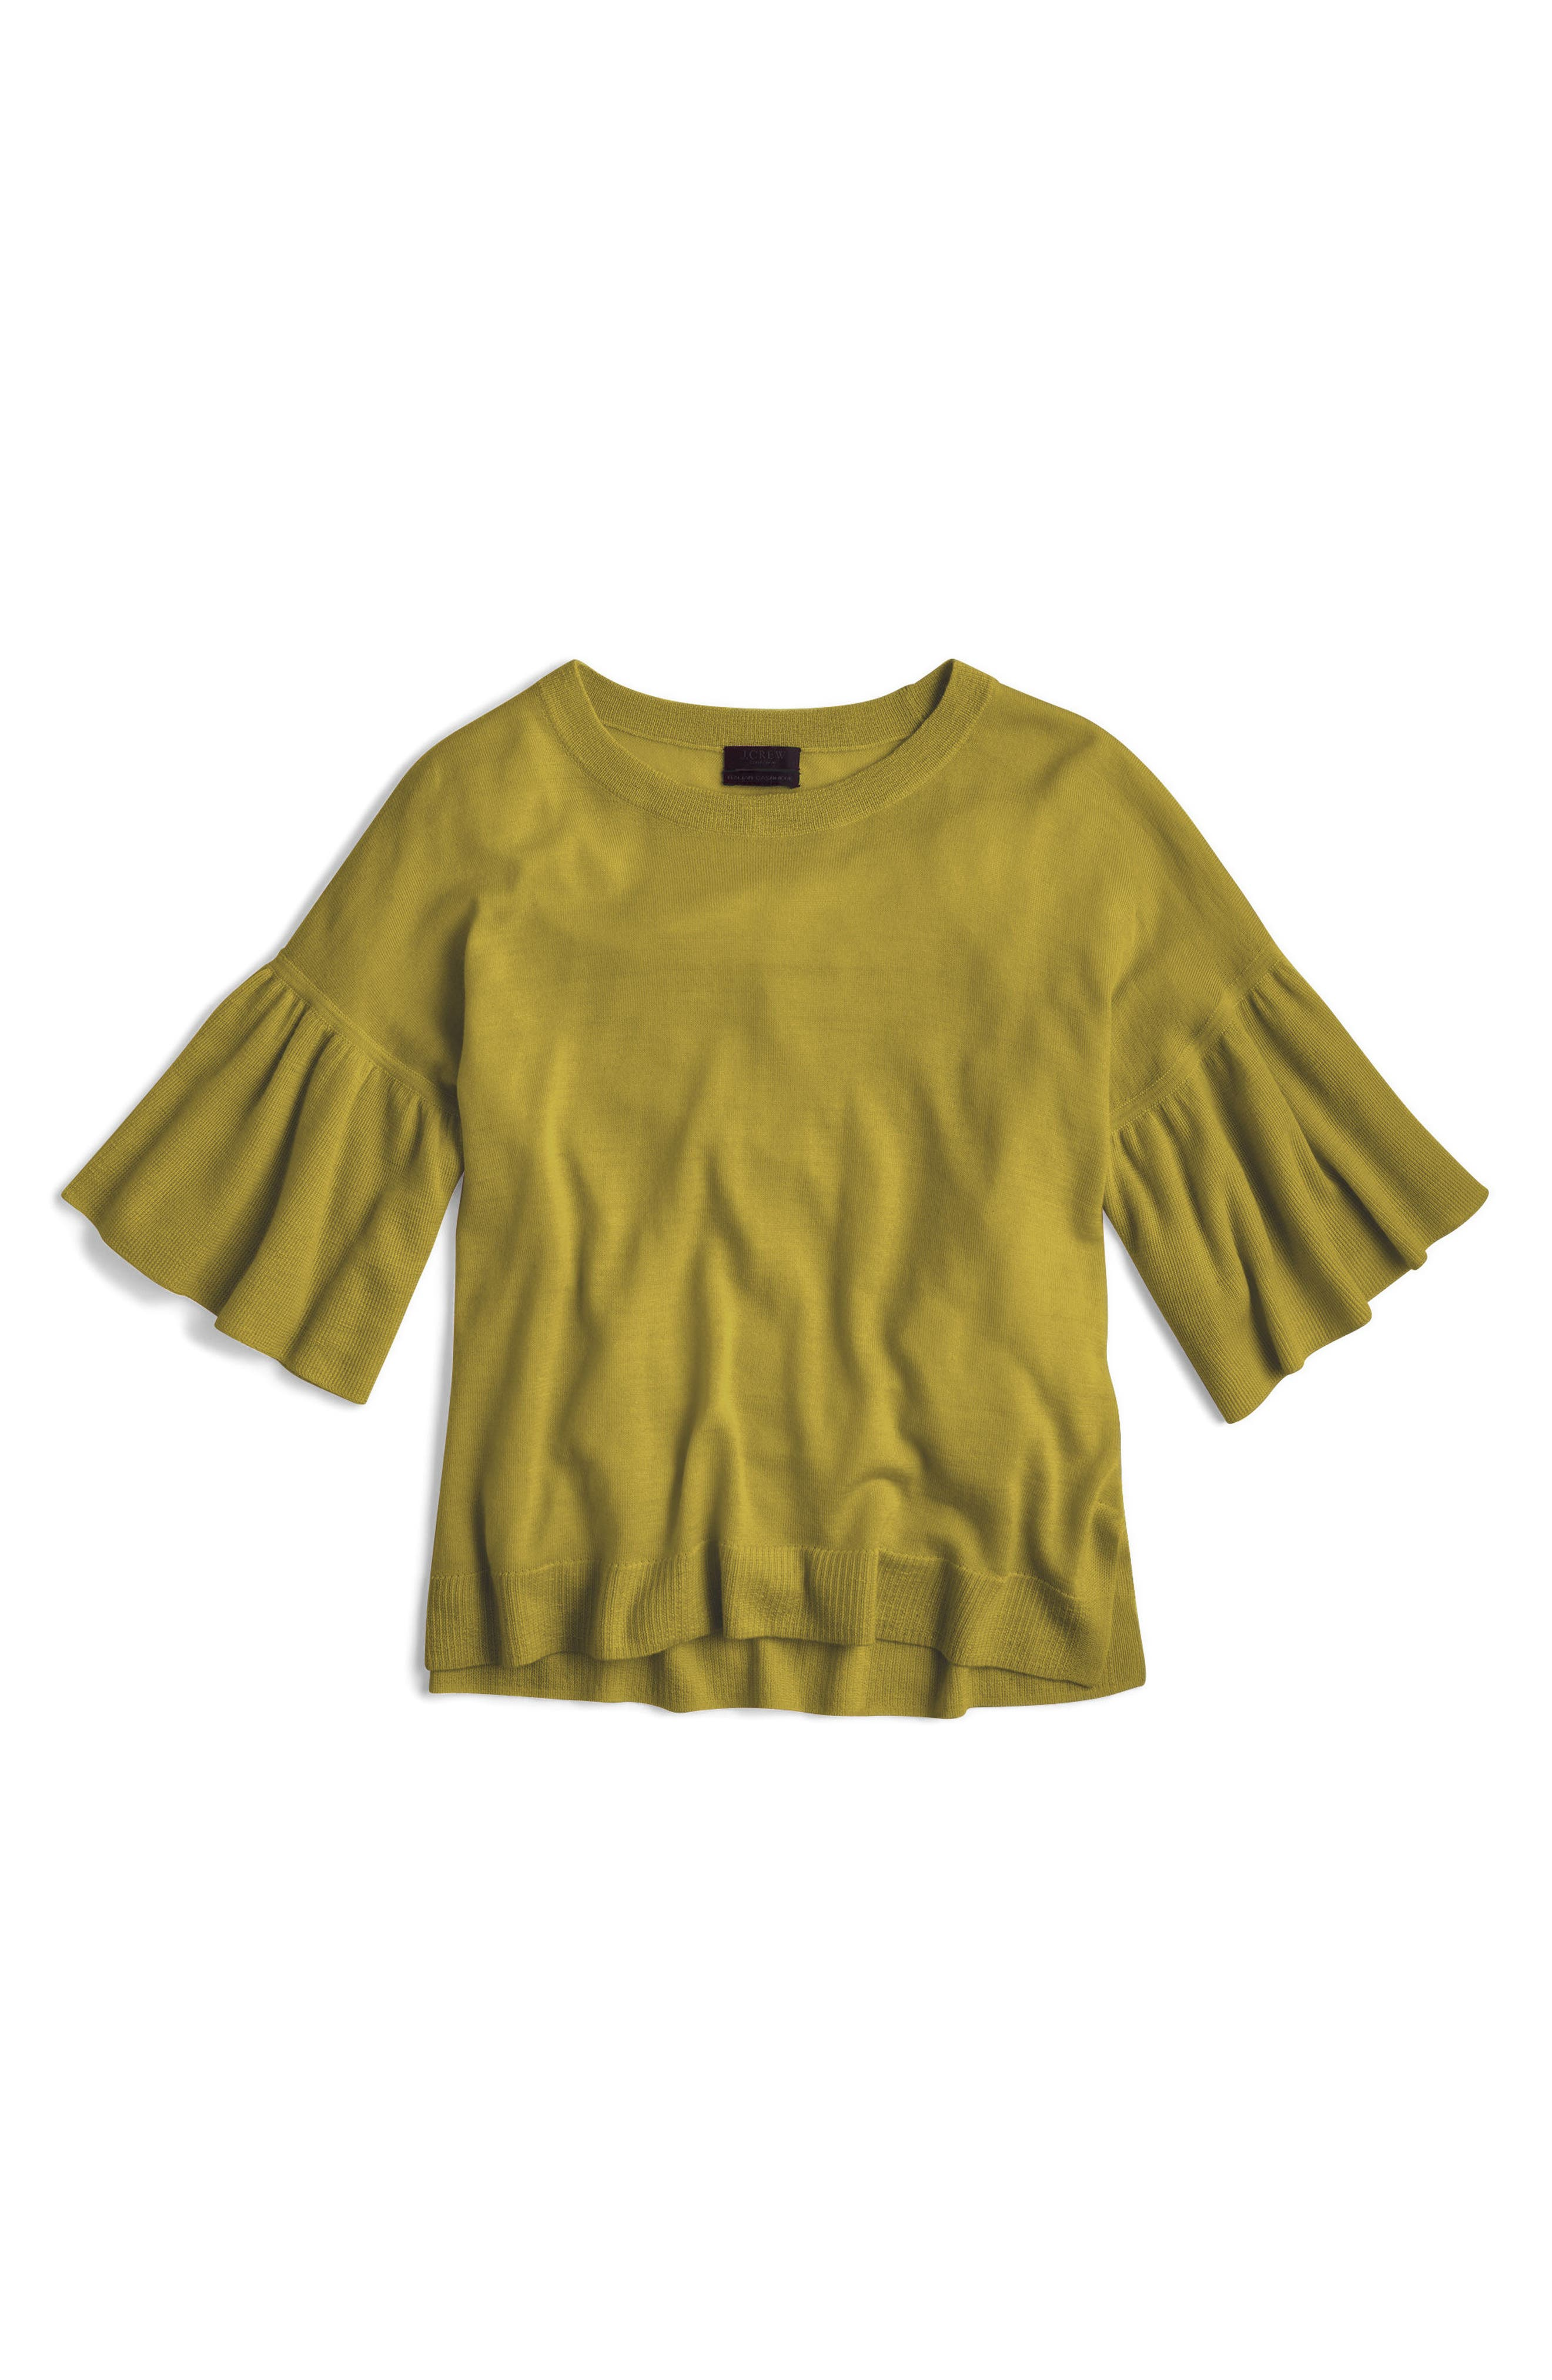 Alternate Image 1 Selected - J.Crew Featherweight Cashmere Ruffle Sleeve Sweater